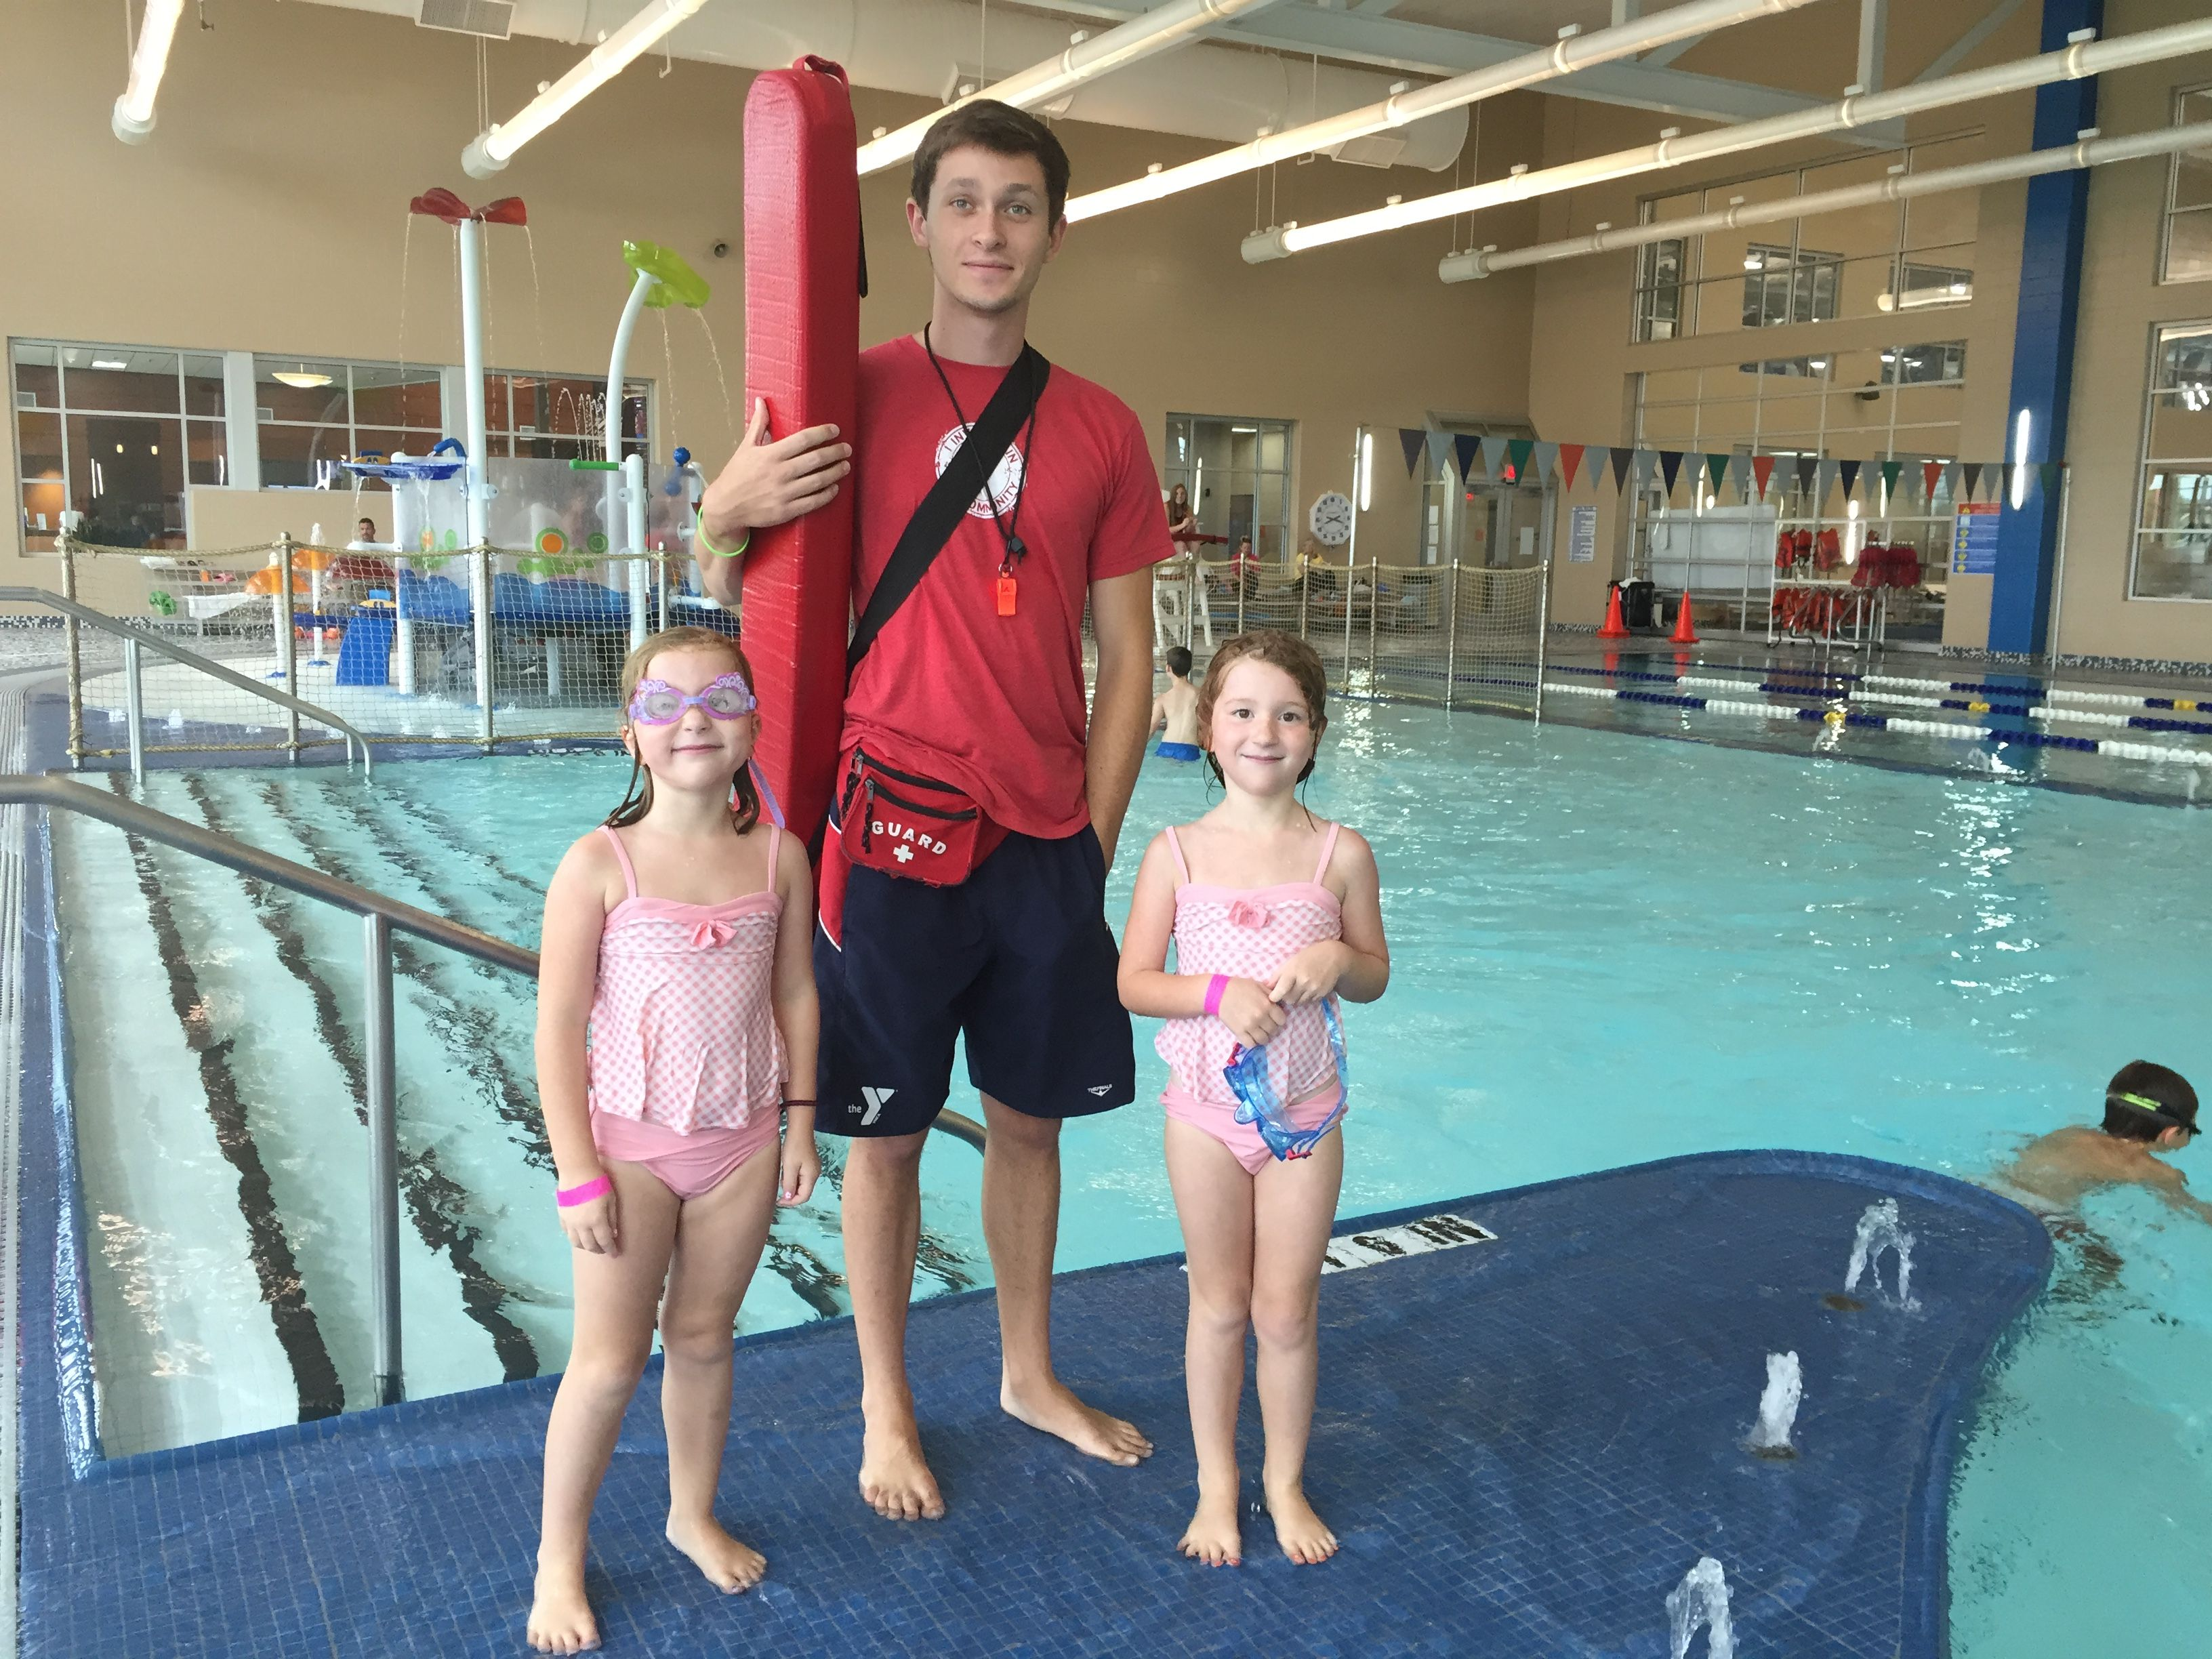 The Mitch Park Ymca Pool The Aquatic Area Includes A Leisure Lap Pool 25 Yards In Length Competitive Pool Water Toys And 130 Ymca Water Slides Water Toys